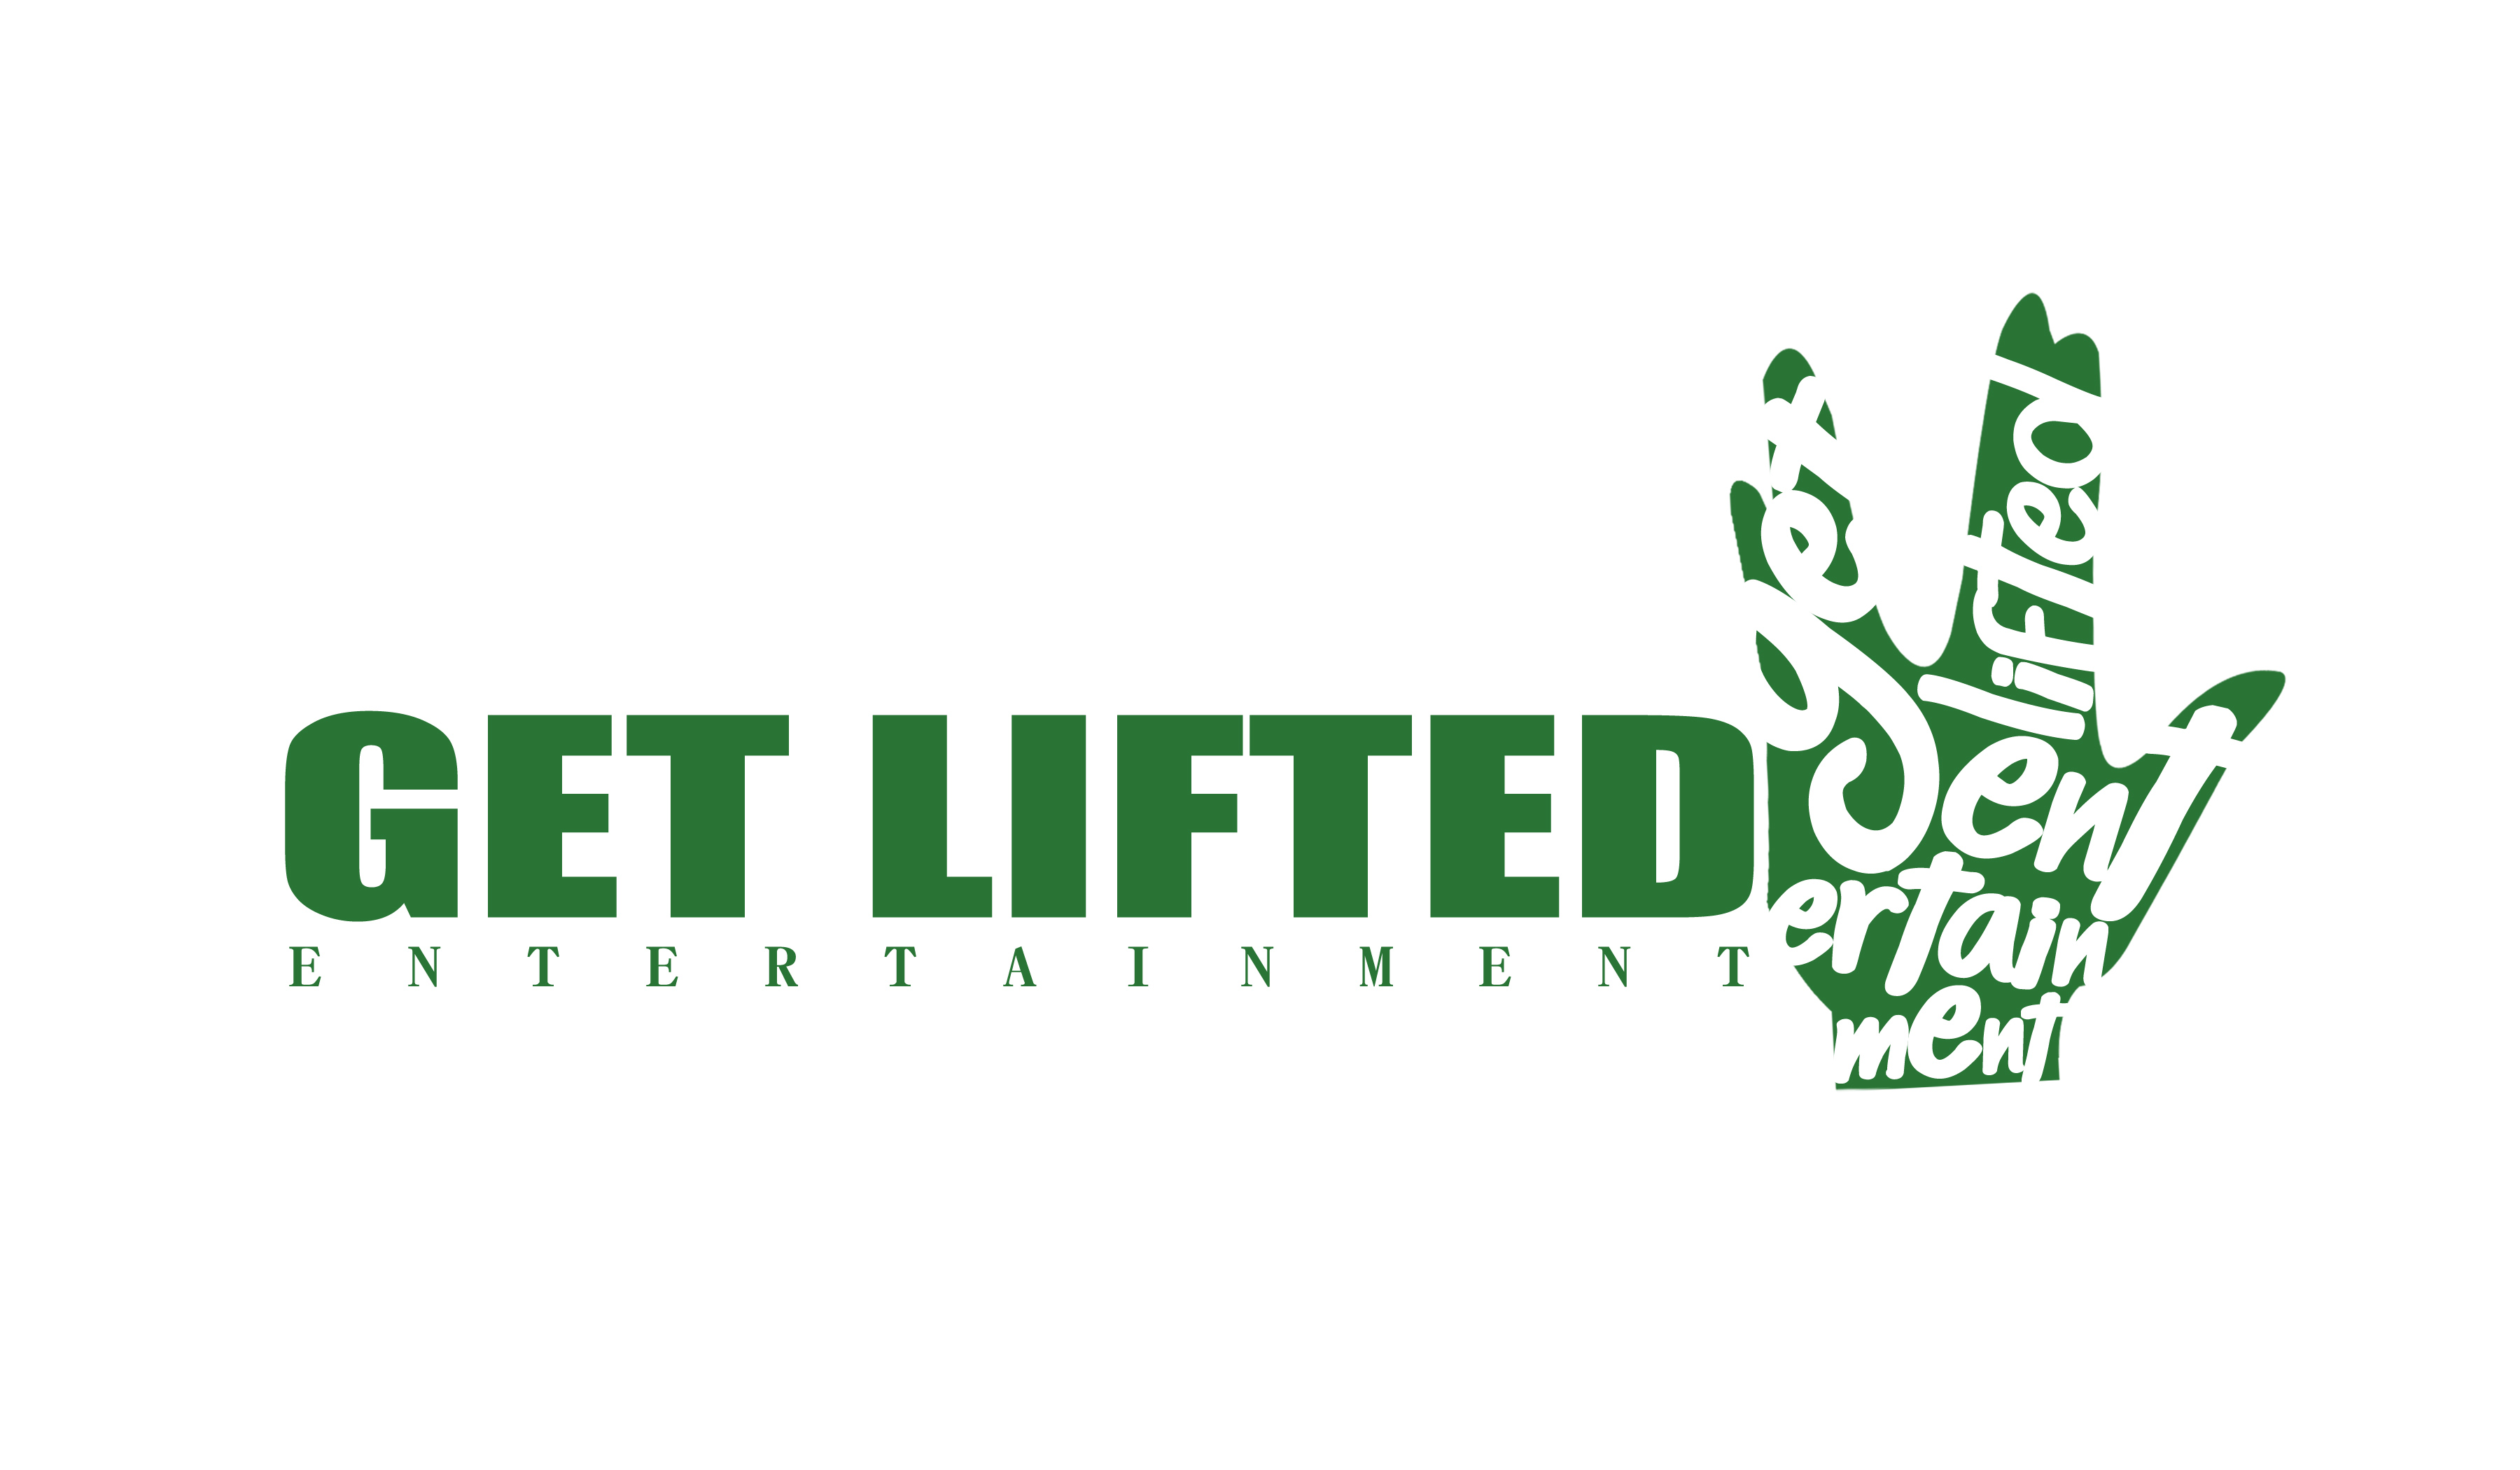 Get Lifted Entertainment